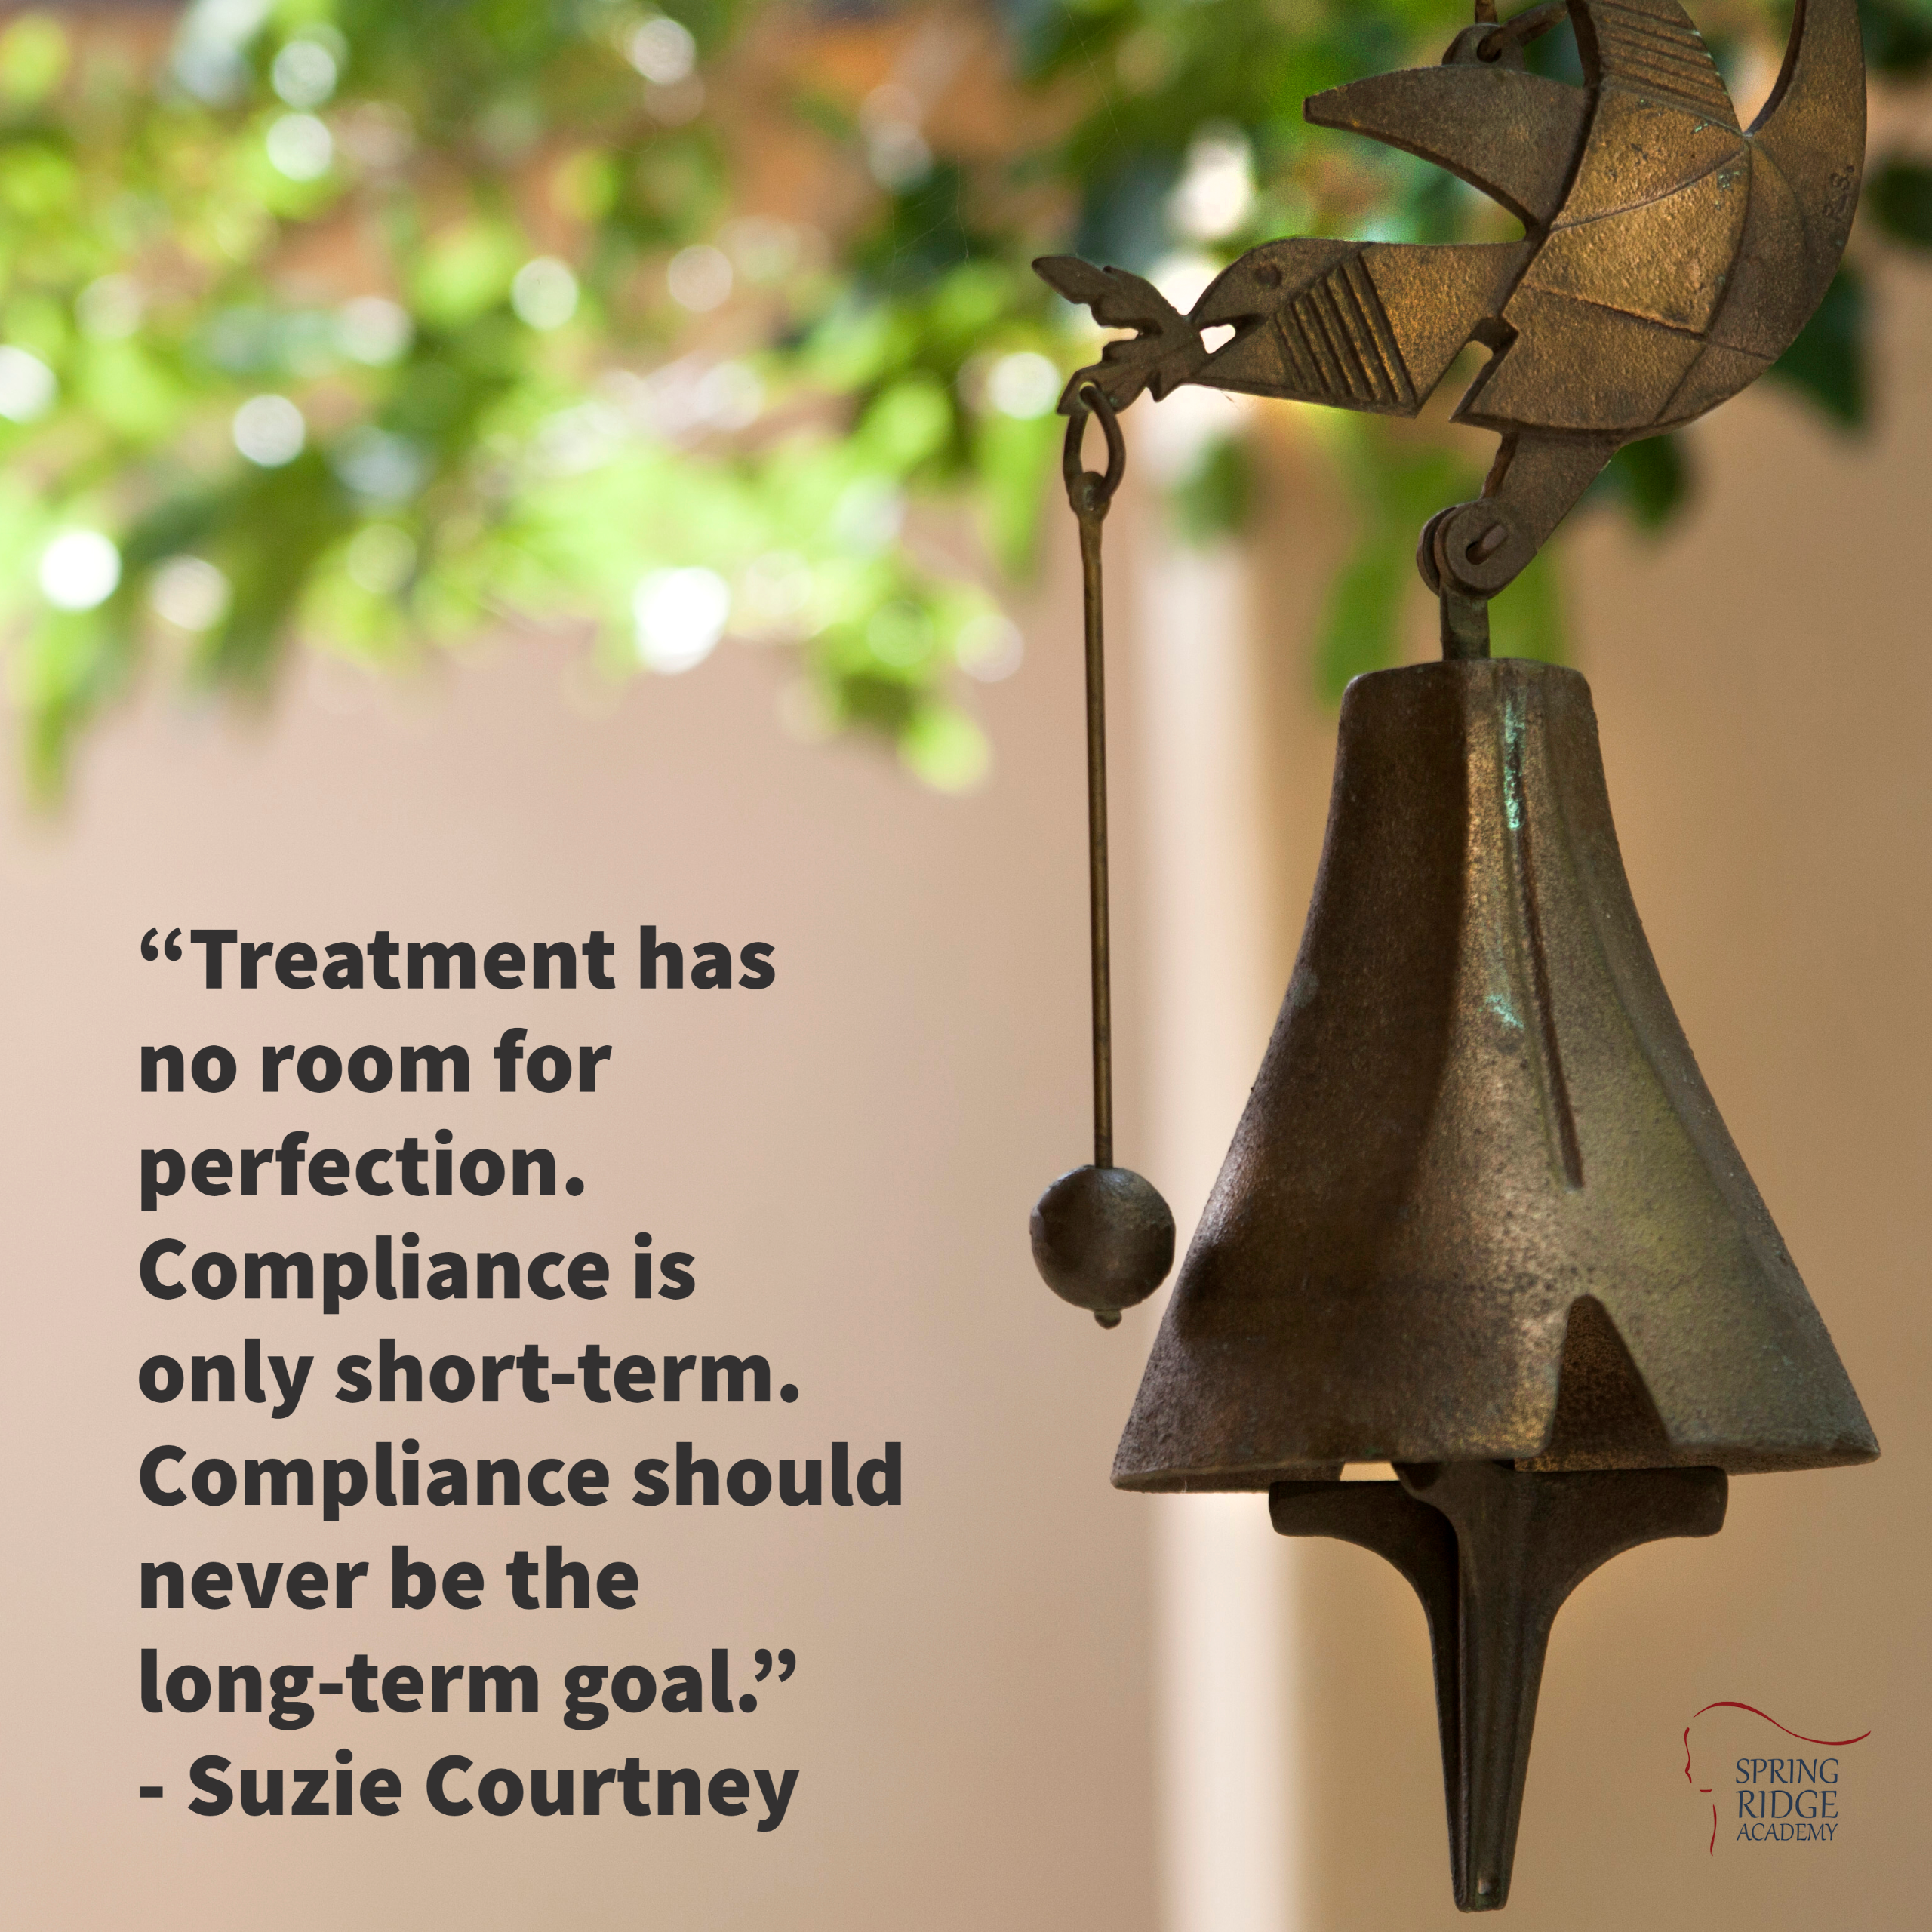 """""""Treatment has no room for perfection. Compliance is only short-term. Compliance should never be the long-term goal."""" - Suzie Courtney, Executive Director, Spring Ridge Academy"""